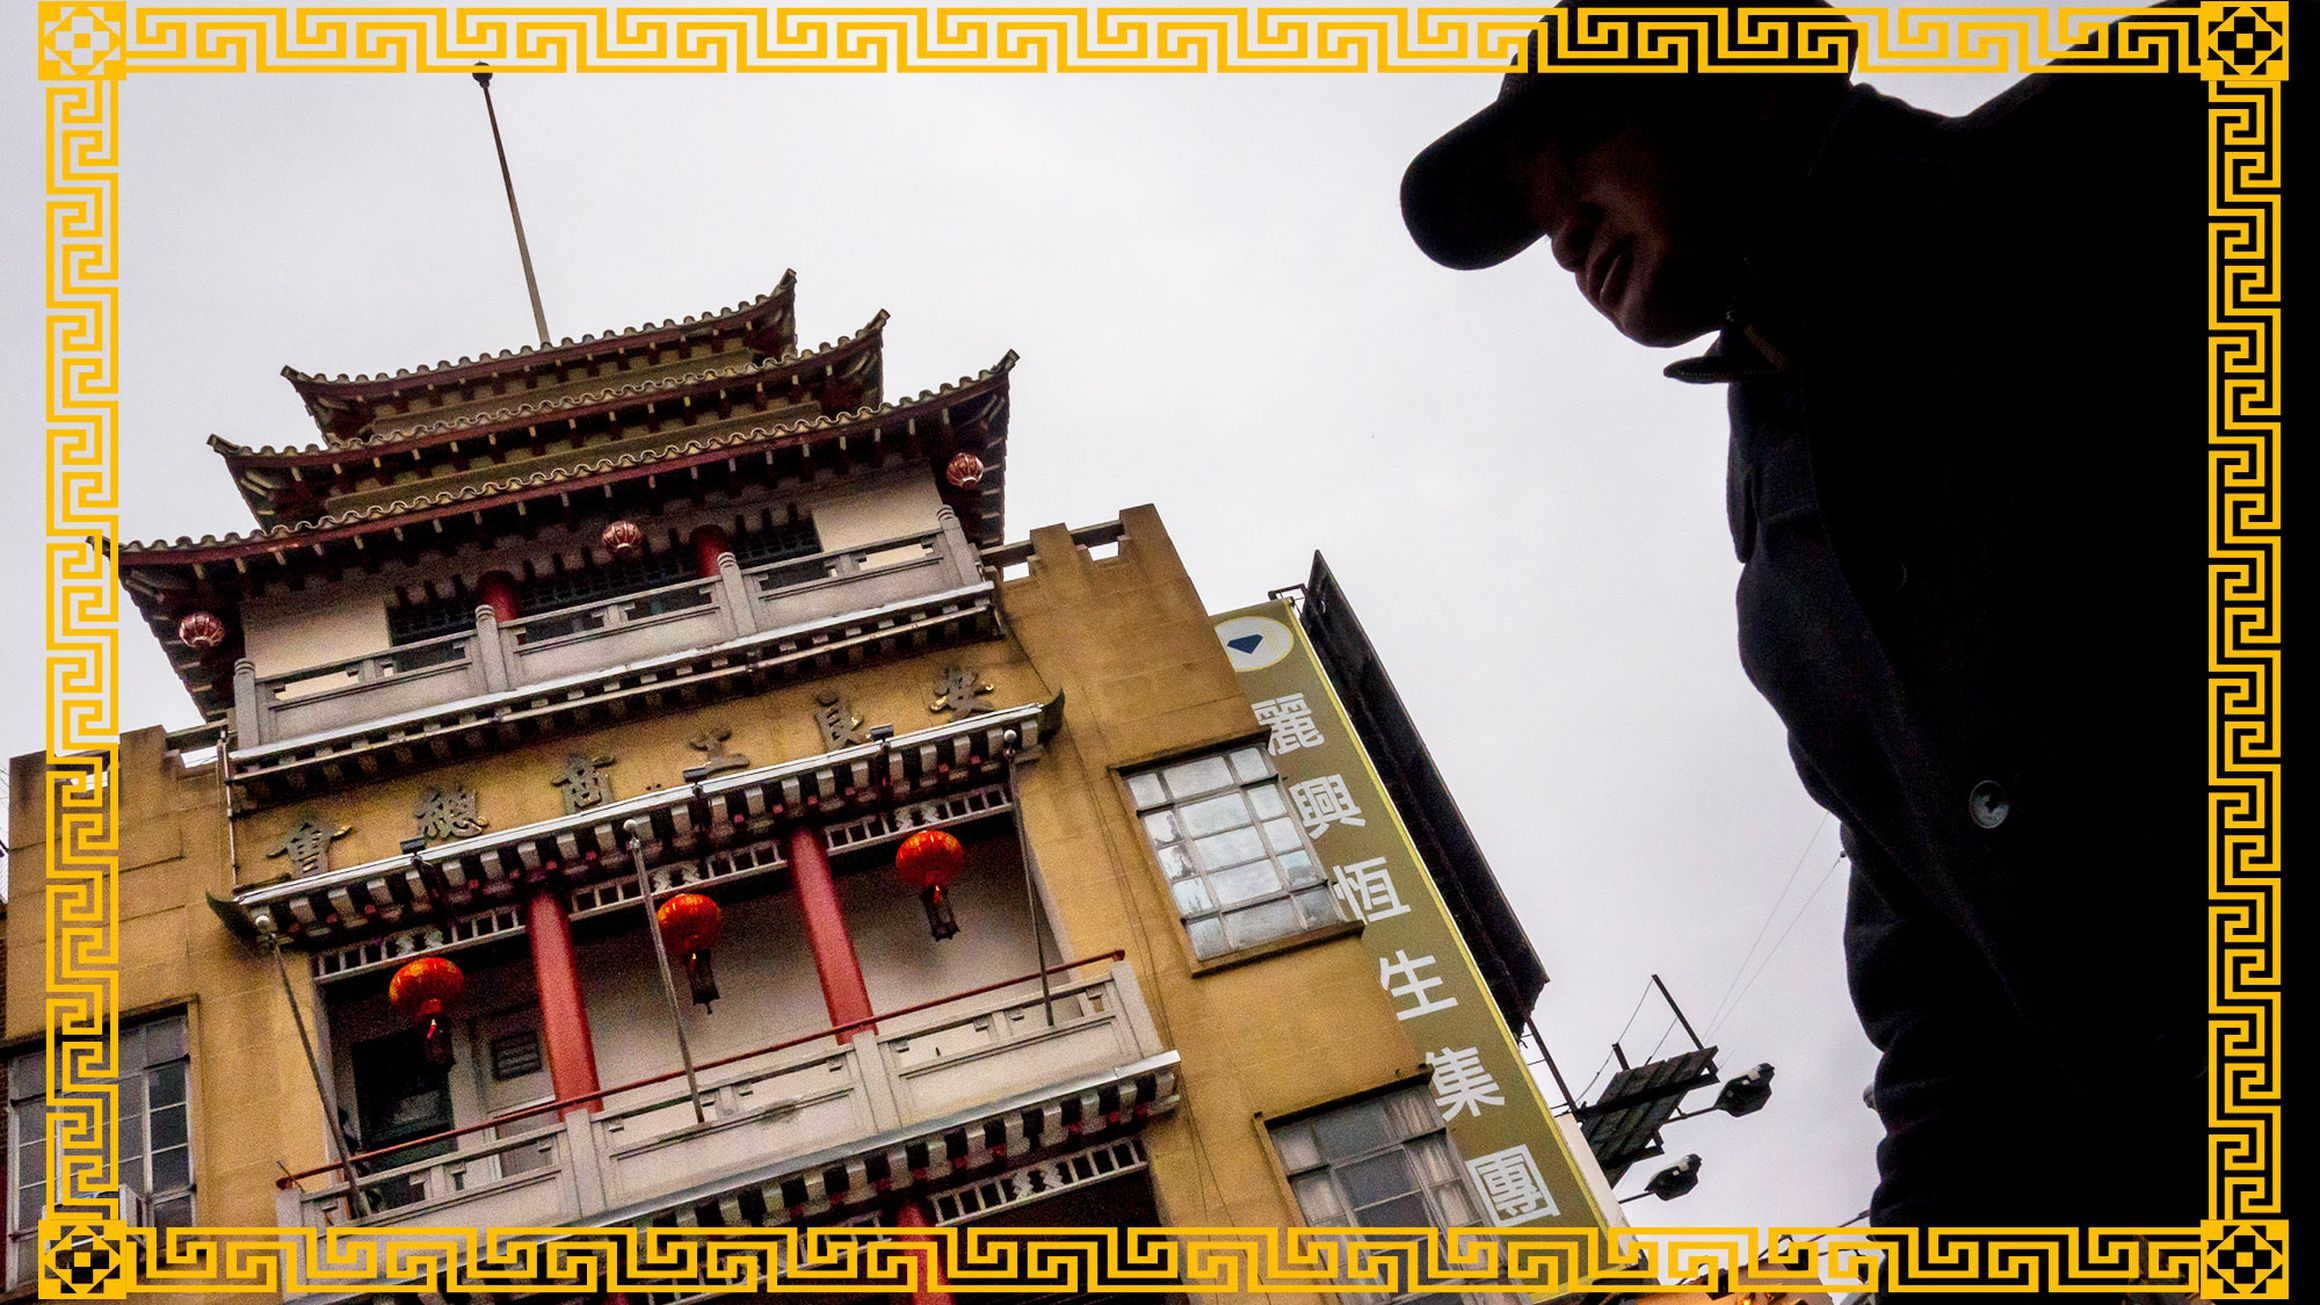 The Best Regional Chinese Food In Nyc Eater Ny Nyc Food Chinese Food Chinese Street Food